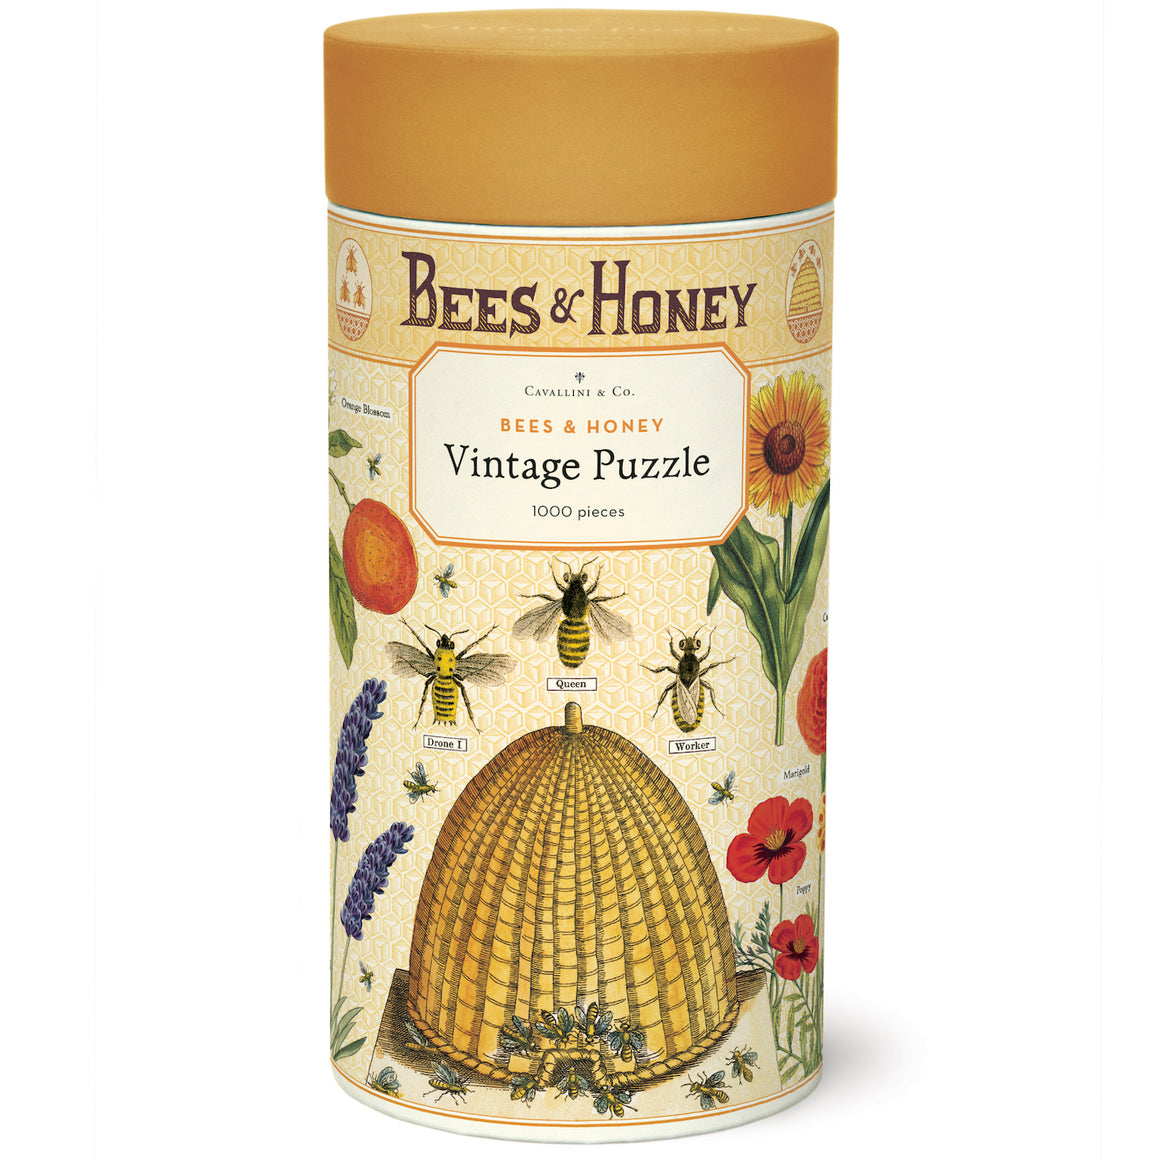 Bees & Honey Cavallini Puzzle Tube 1000pcs